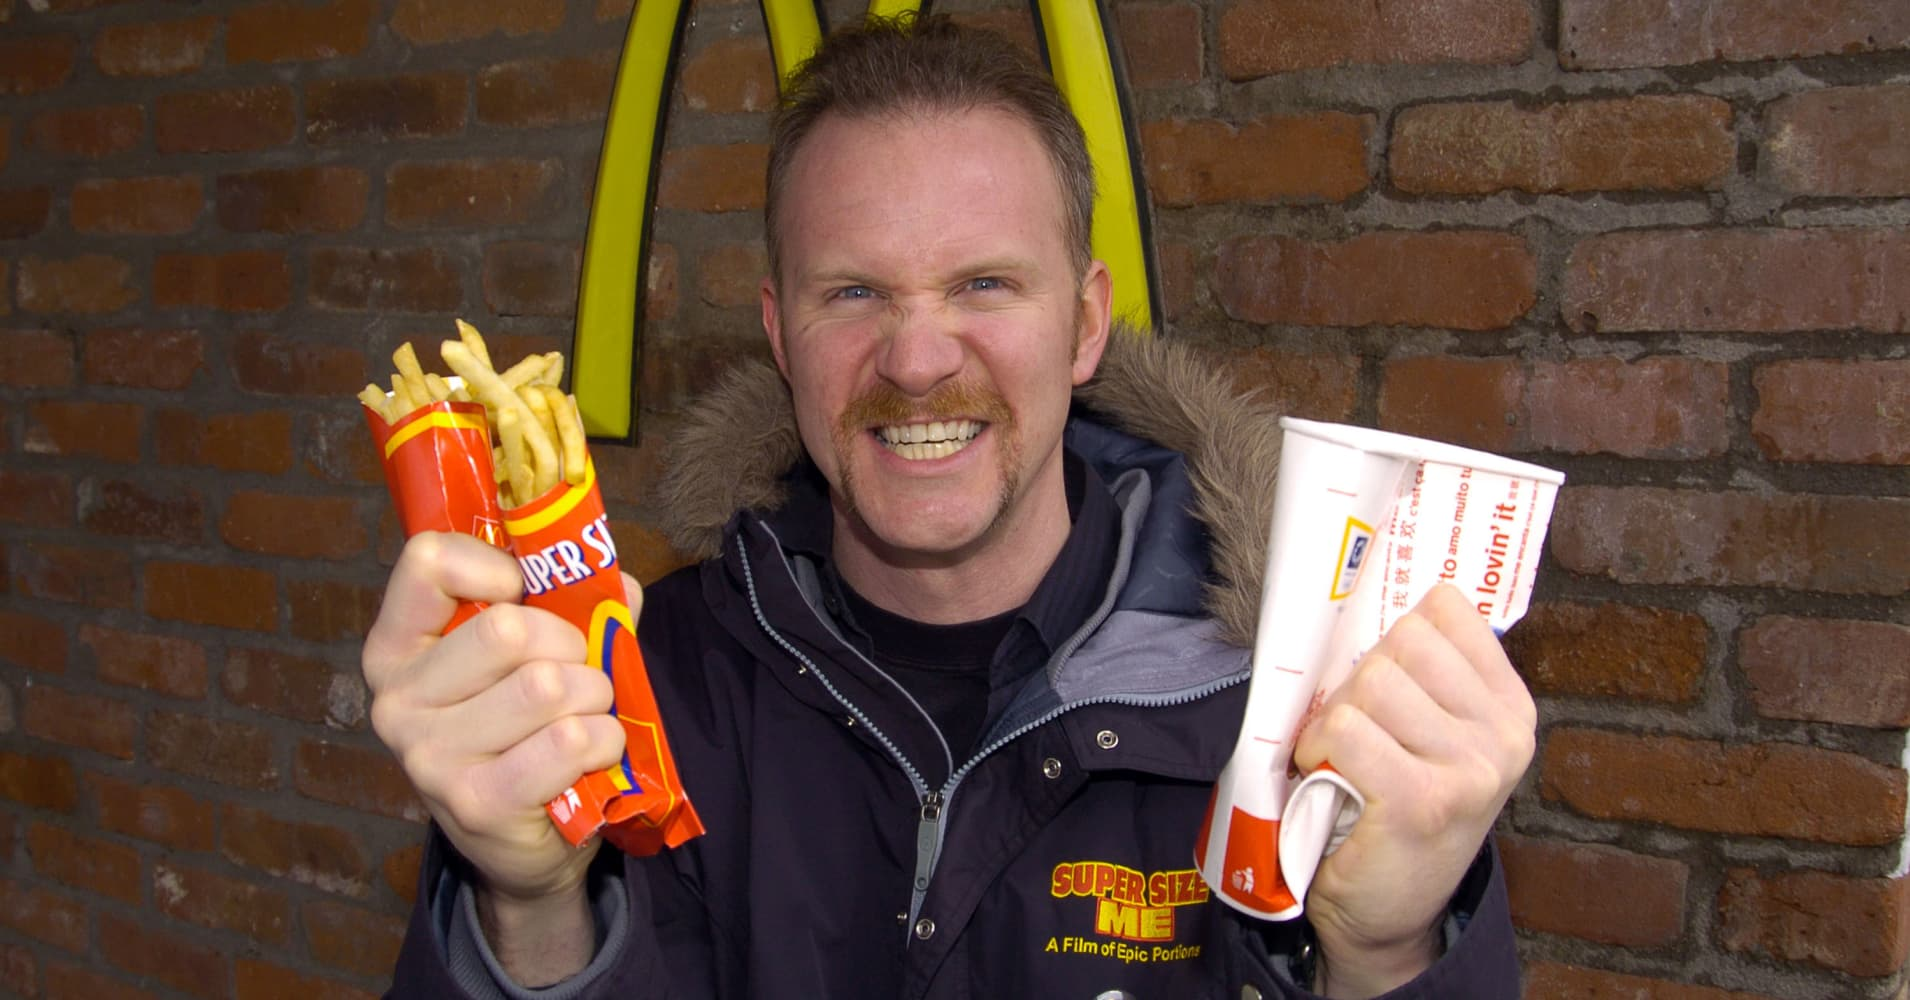 morgan spurlocks super size me essay Super size me rhetorical analysis analysis of super size me morgan spurlock decided to make this documentary to super size me essay.